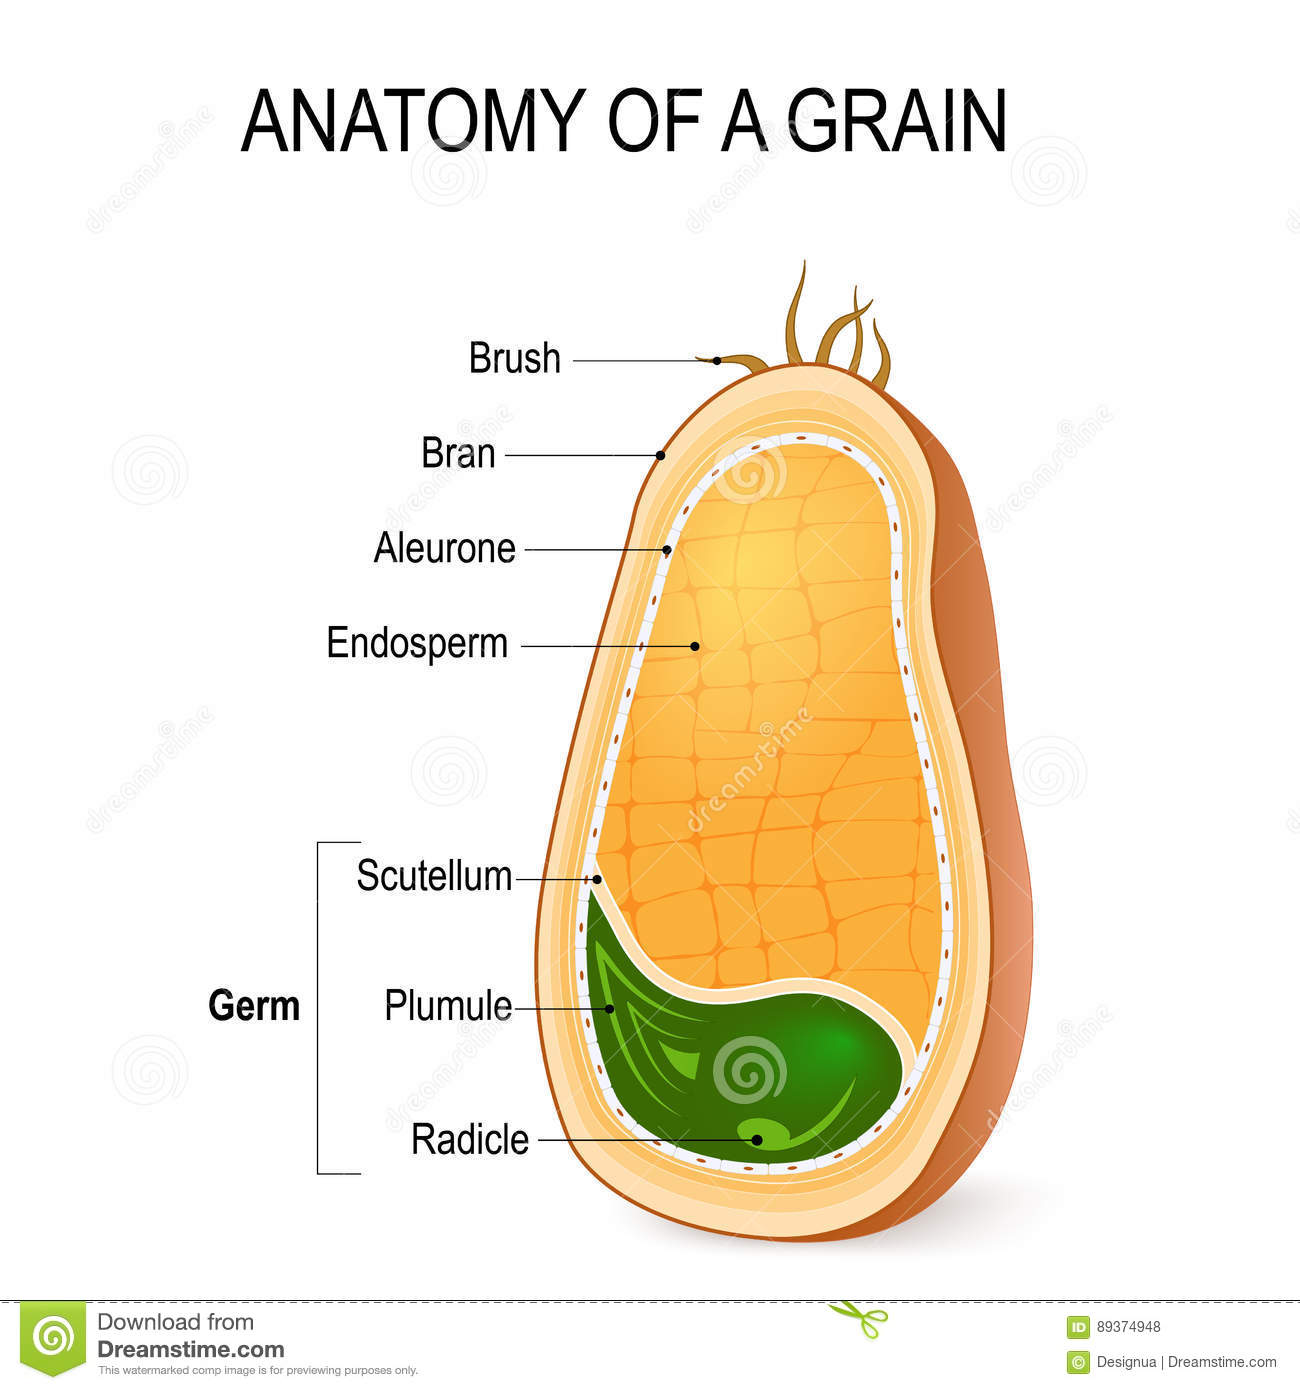 Anatomy Of A Grain. Inside The Seed. Stock Vector - Illustration of ...